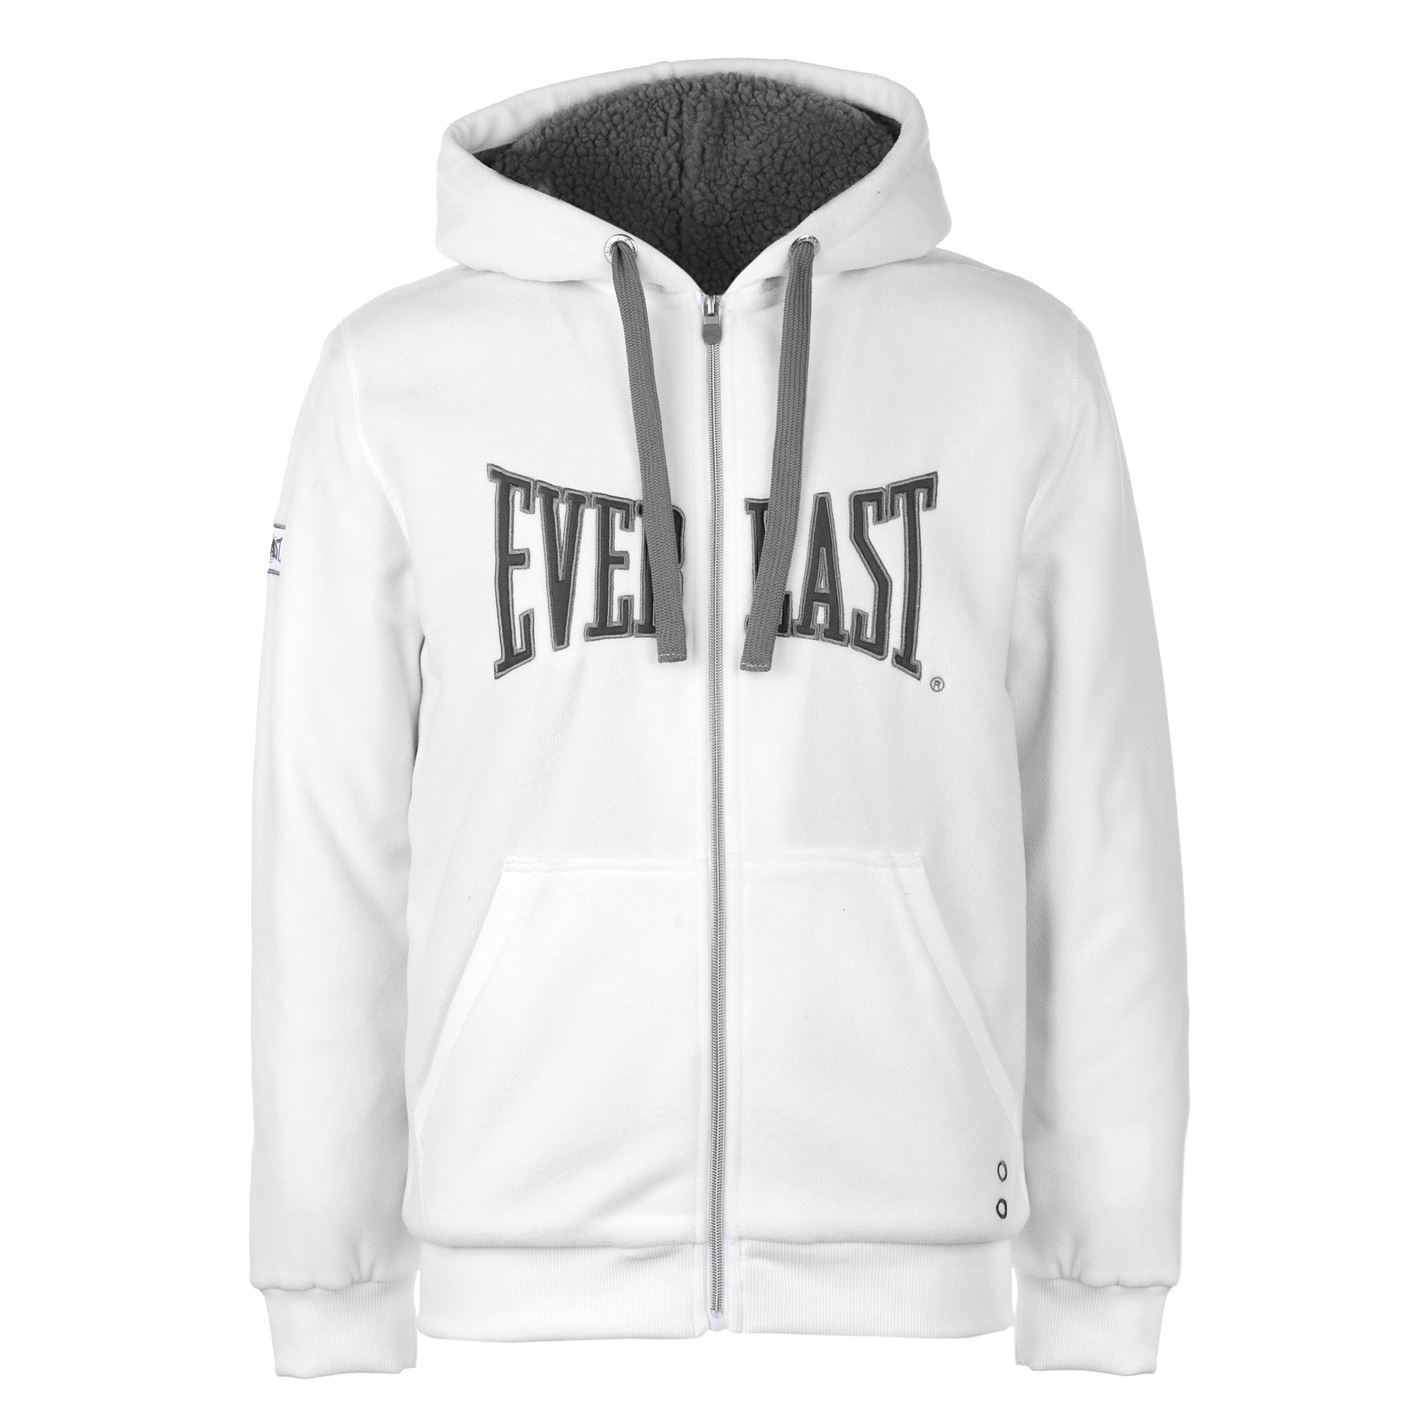 Details about Everlast Mens Polar Fleece Zip Hoody Lined Hoodie Hooded Top  Long Sleeve Full a54f7894d47b